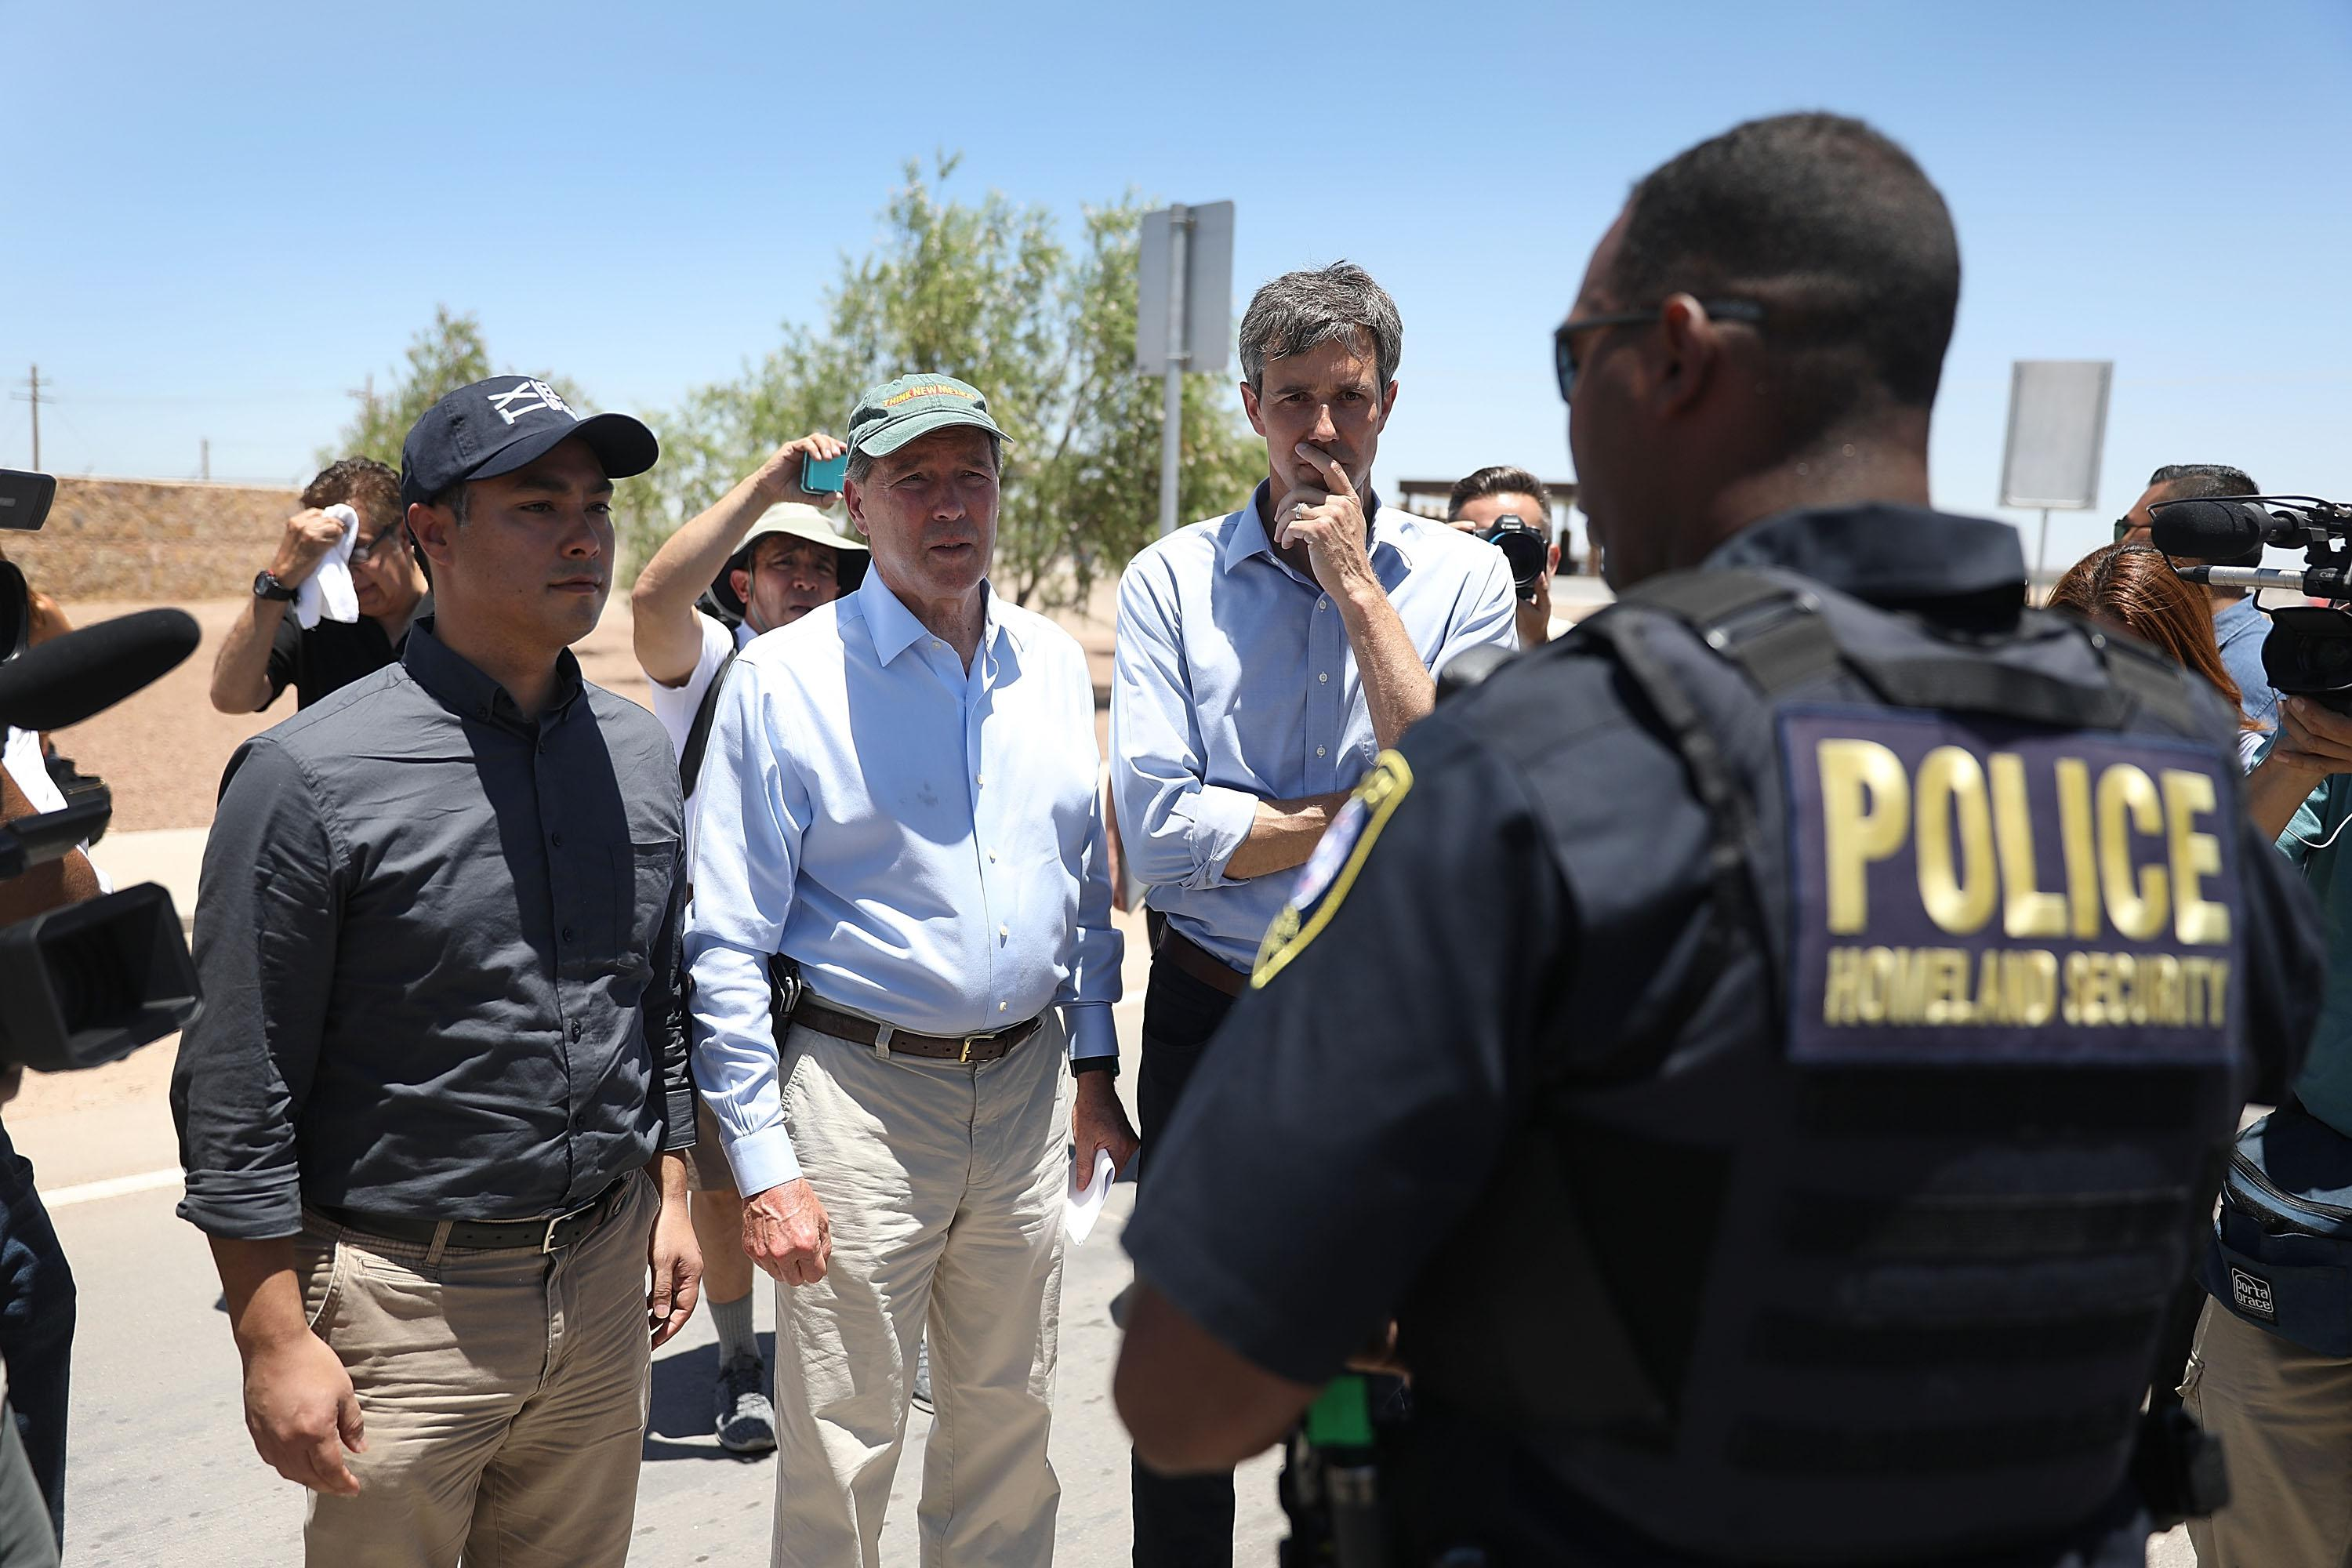 Rep. Joaquin Castro (D-TX), U.S. Senator Tom Udall (D-NM) and Rep. Beto O'Rourke (D-TX)(L-R) are briefed by a Department of Homeland Security police officer before touring a tent encampment near the Tornillo-Guadalupe Port of Entry on June 23, 2018 in Tornillo, Texas.